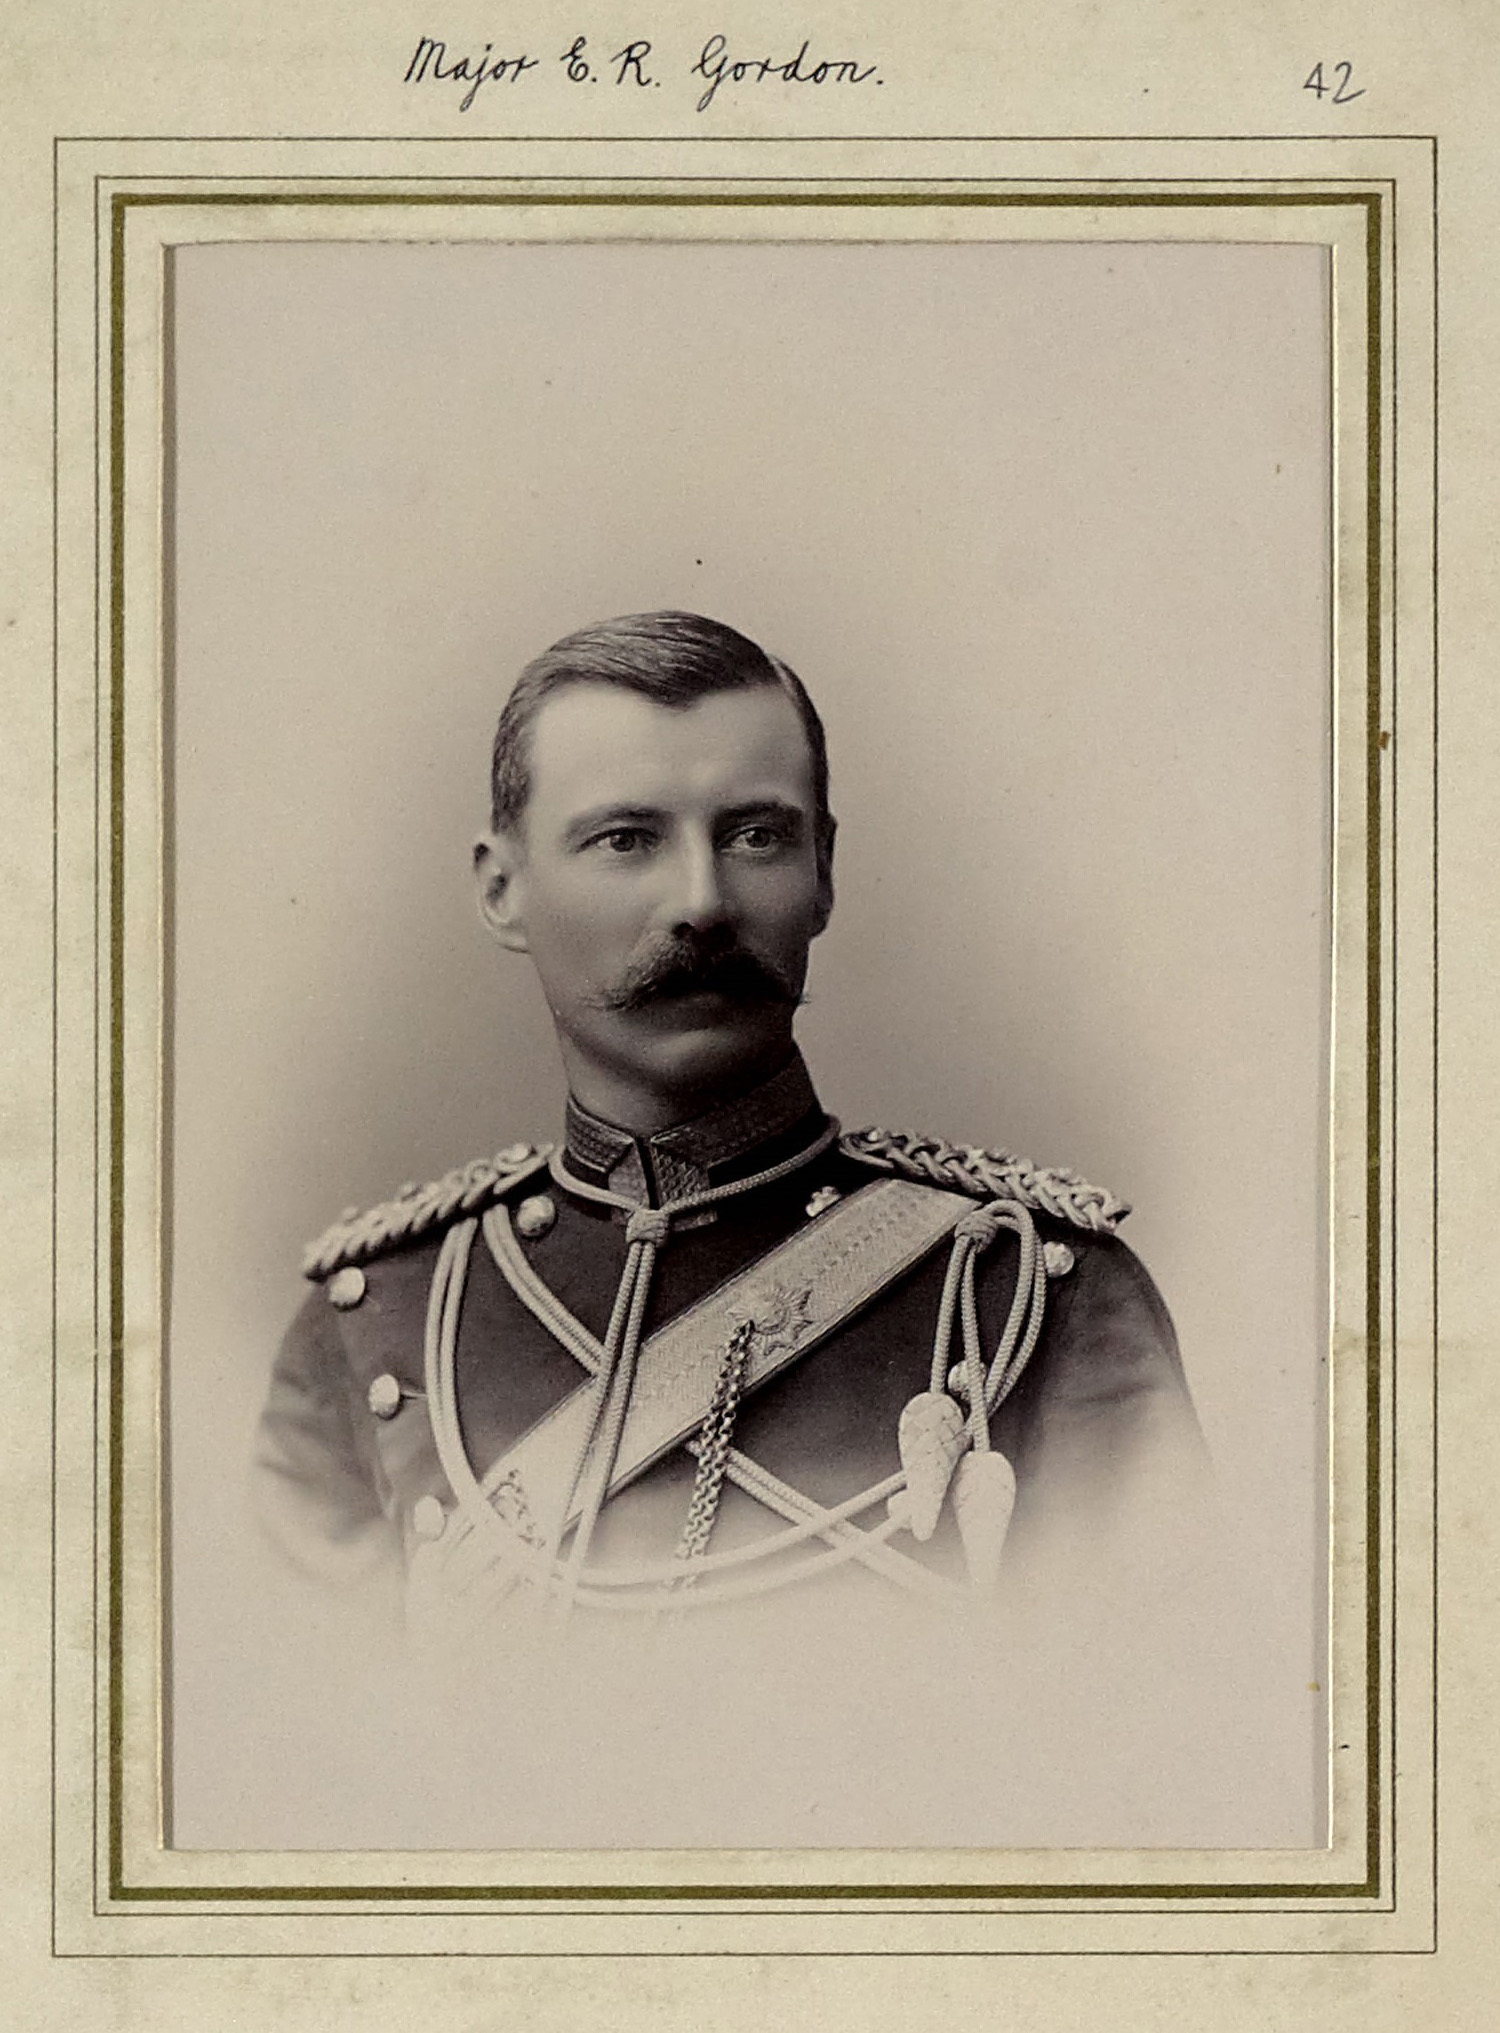 Edward Robertson Gordon as a Captain in the 9th Lancers, to which he transferred in that rank in 1896. The photo dates before 1902 as he does not yet wear his Boer War campaign medals and has the two stars of a Captain on his epaulettes (increased to three by Army reforms of 1902); as as he was in the field from 1899 to 1902 it seems most likely that the photo was taken before then (copyright 9th/12th Lancers Regimental Museum, Accession No 2090-16-42).